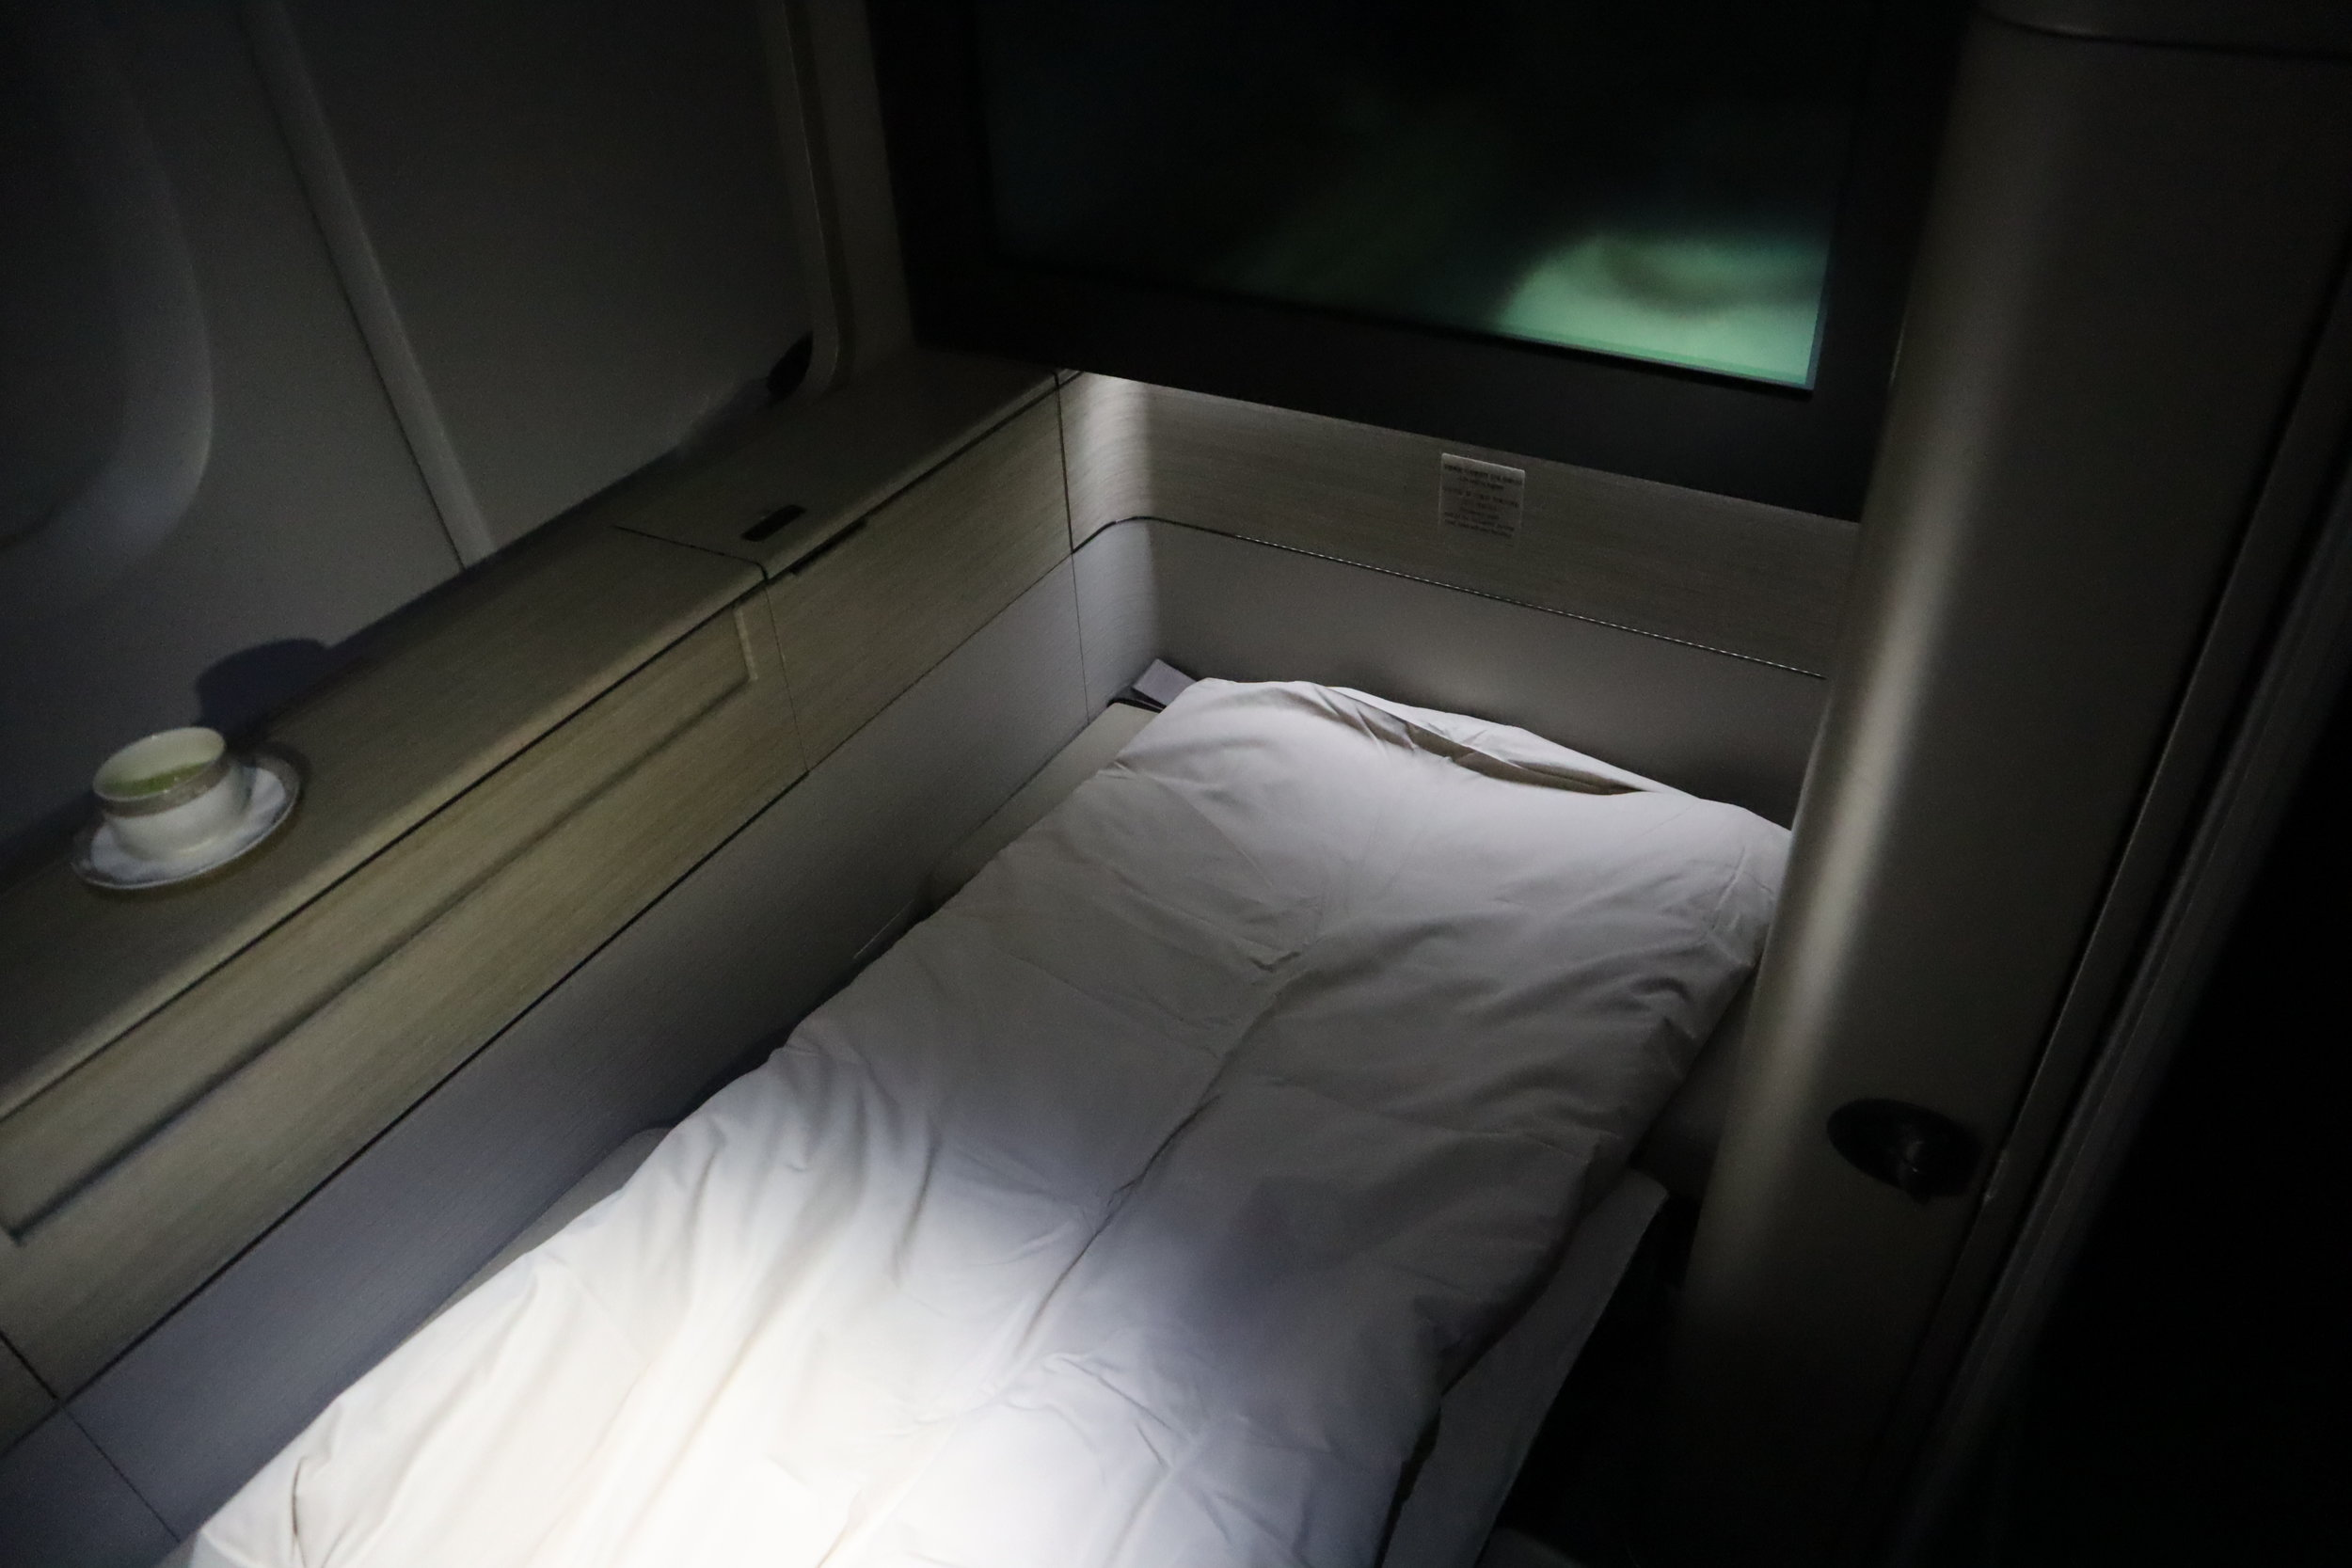 Asiana Airlines First Class – Lie-flat bed